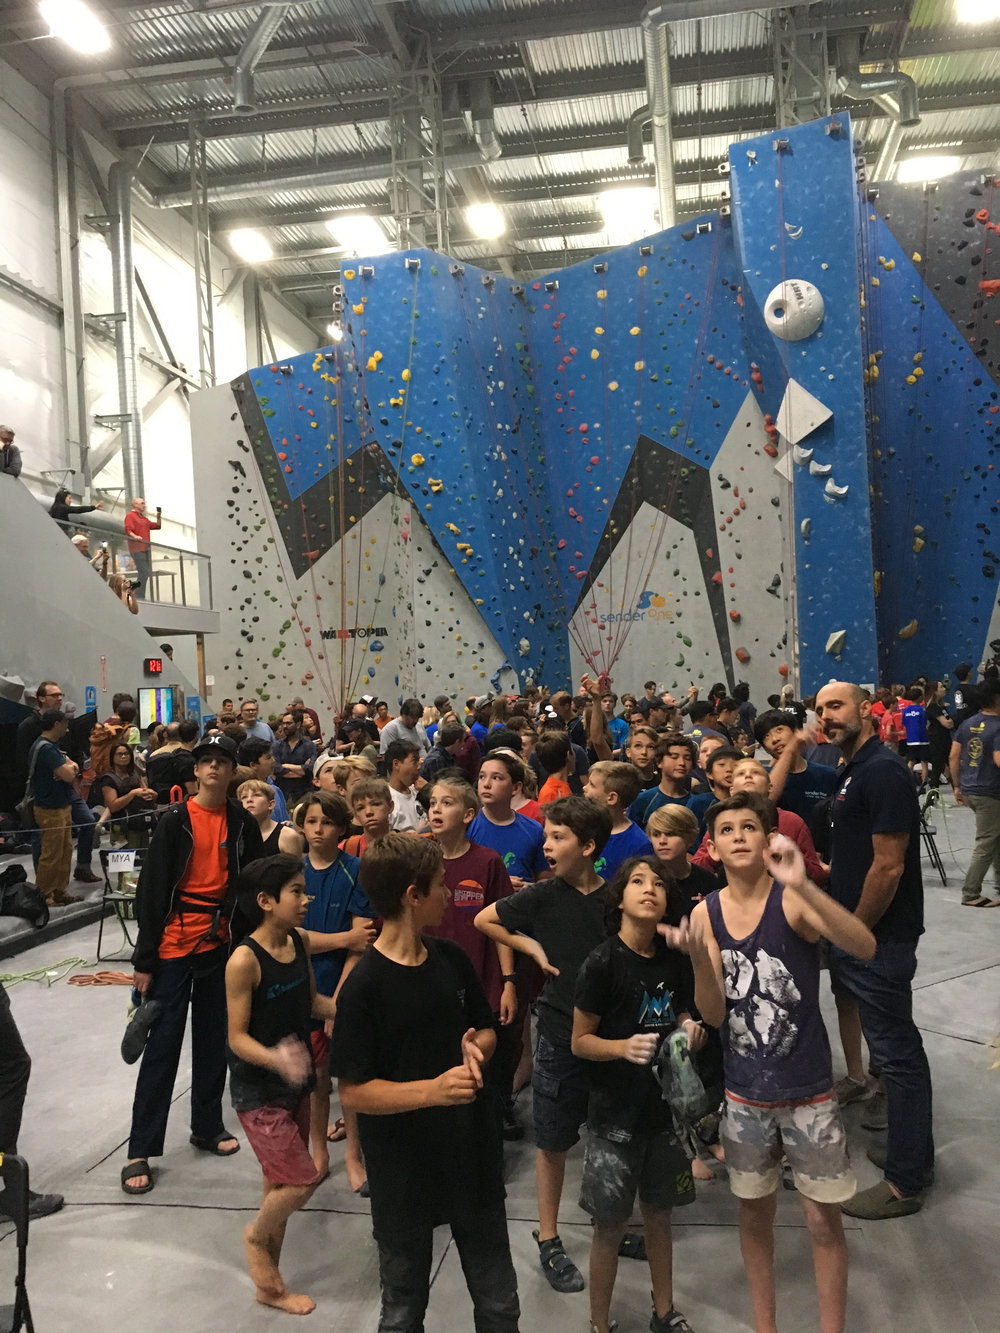 Friends first. - Climbers on different teams often willingly share beta with each other at competitions.